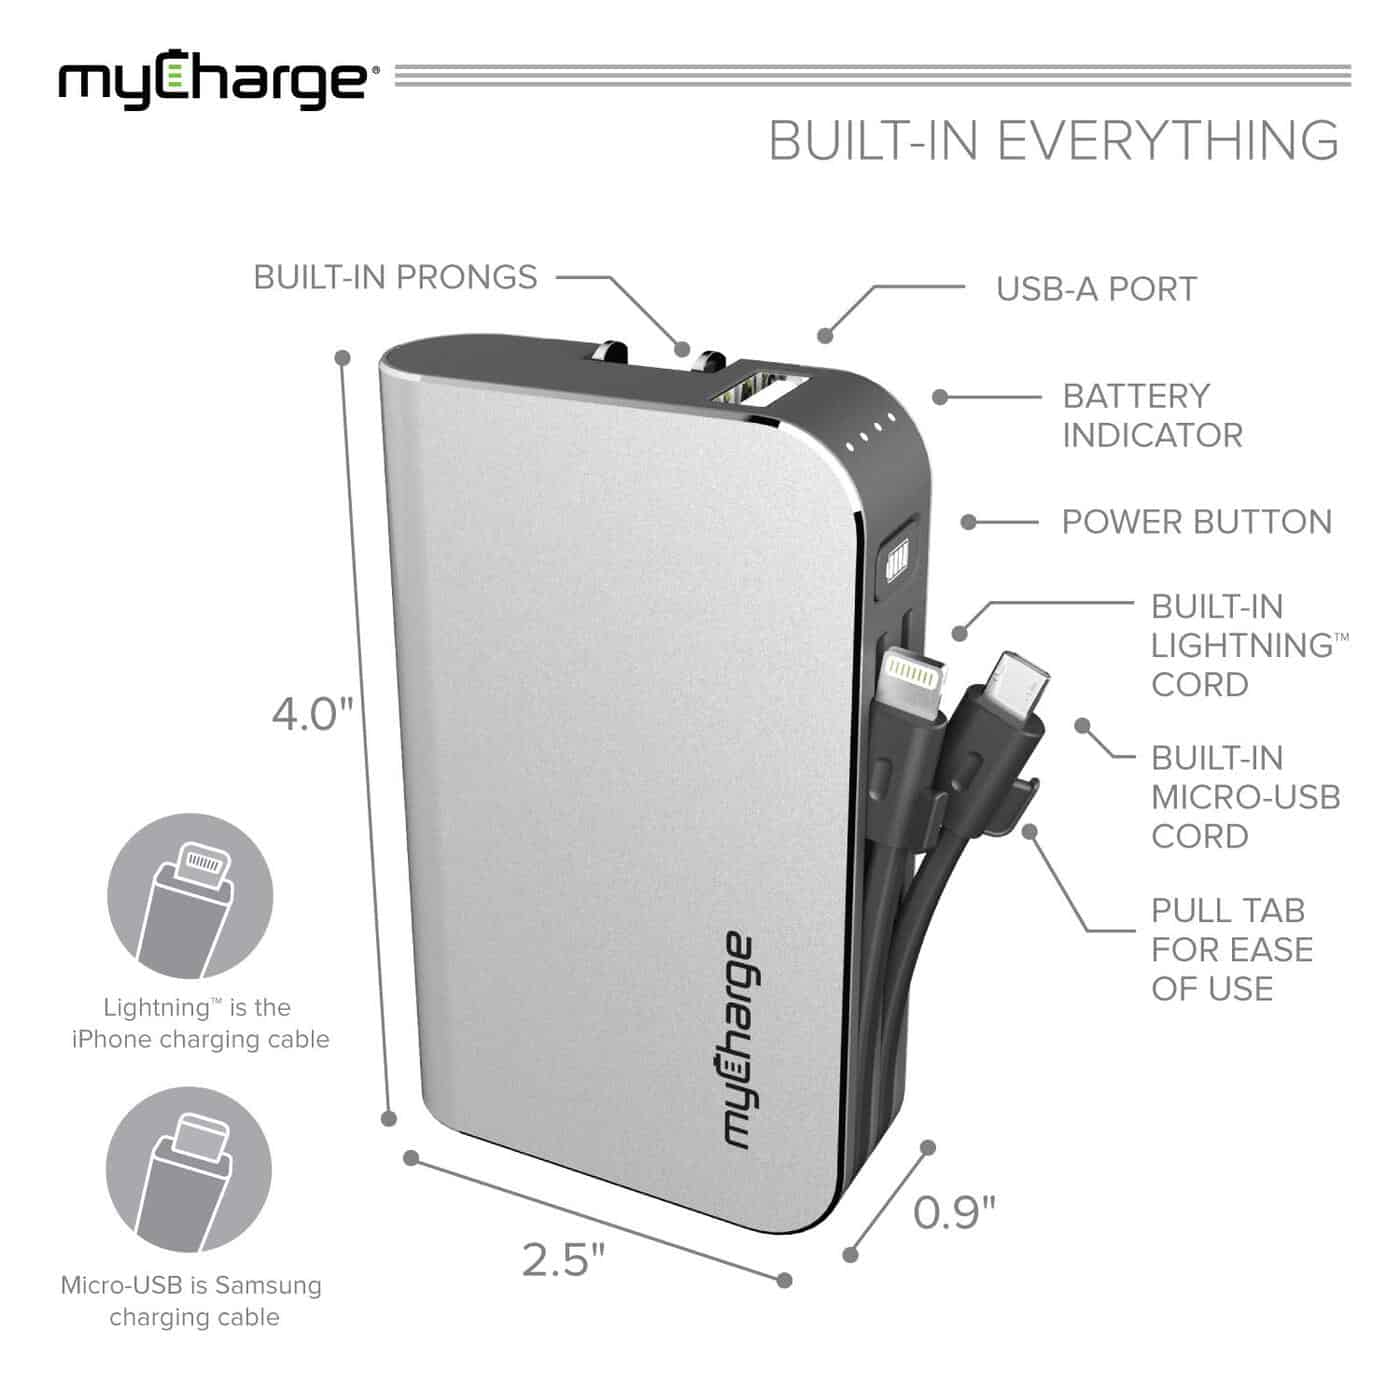 mycharge diagram showing what all the parts are: usb and lightning cords built in, wall outlet prongs in the back